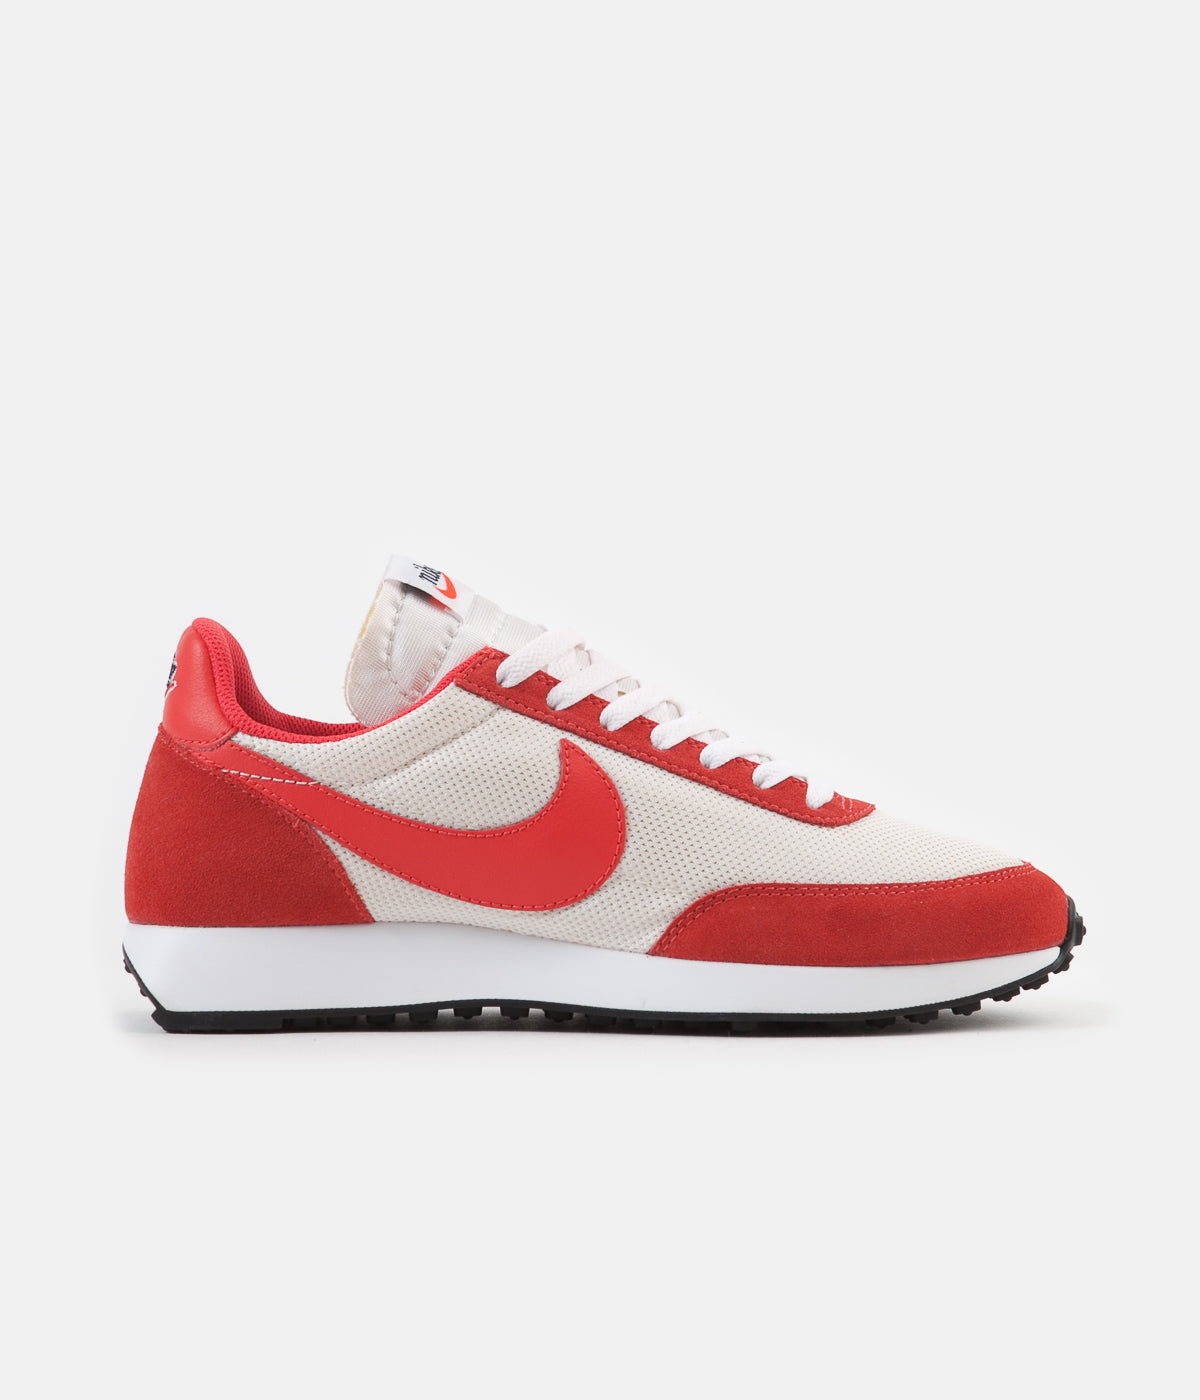 Vago bestia Biblia  Nike Air Tailwind 79 Shoes - Sail / Track Red - White - Habanero Red |  Always in Colour